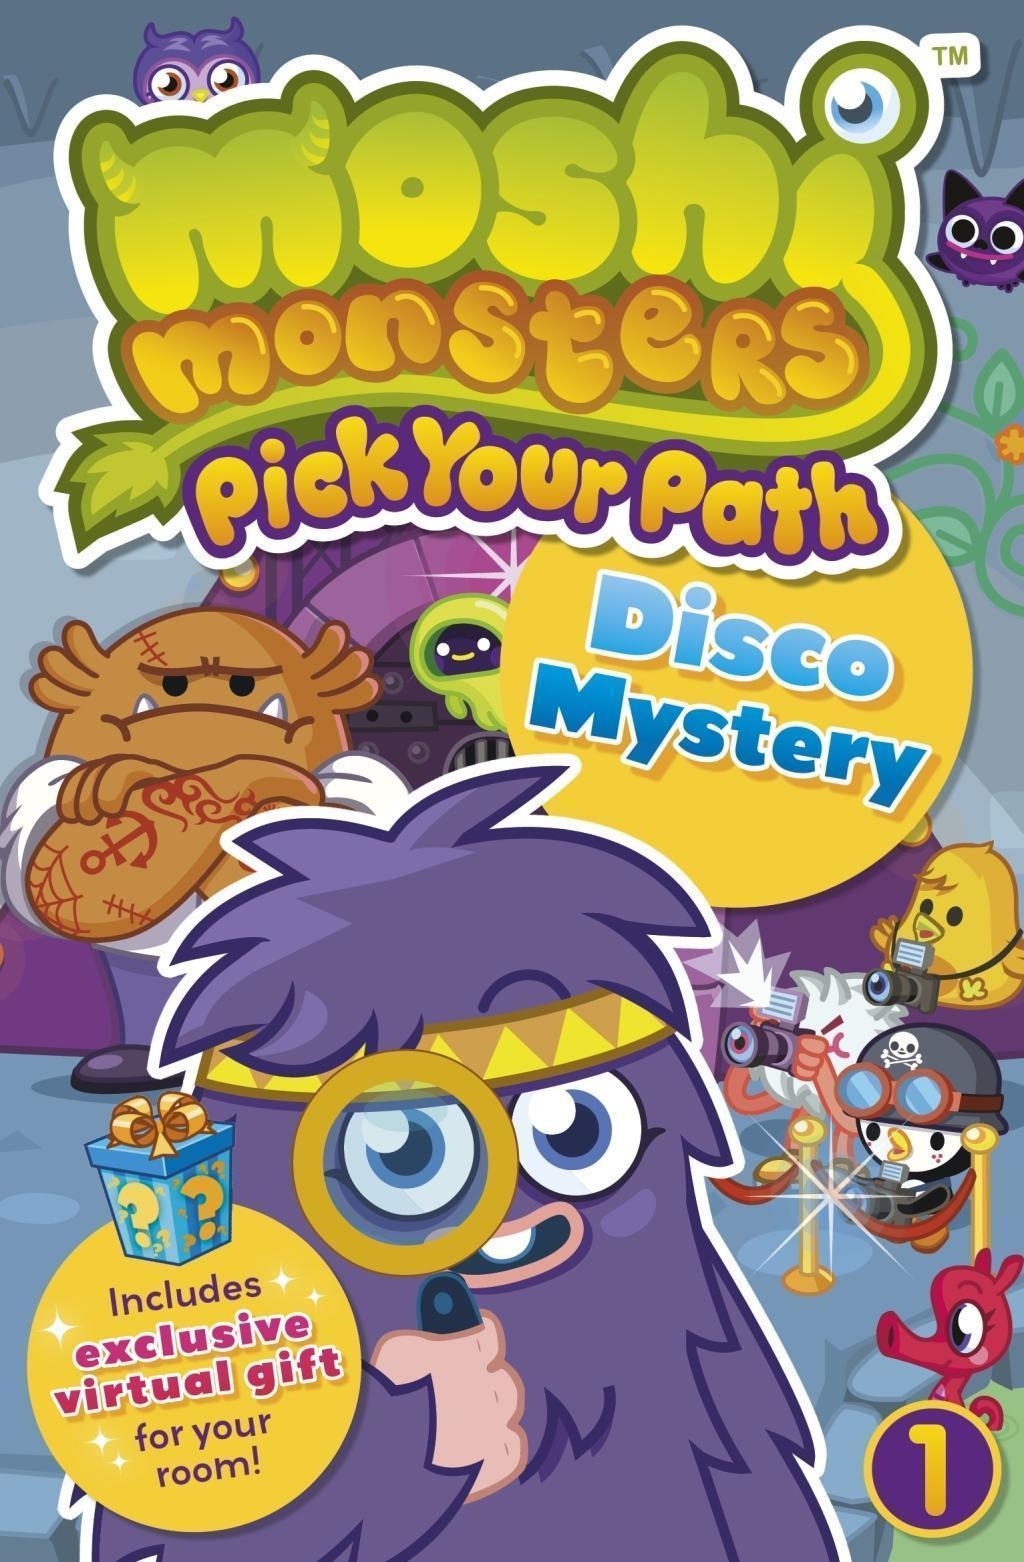 Moshi Monsters Pick Your Path 1: Disco Mystery